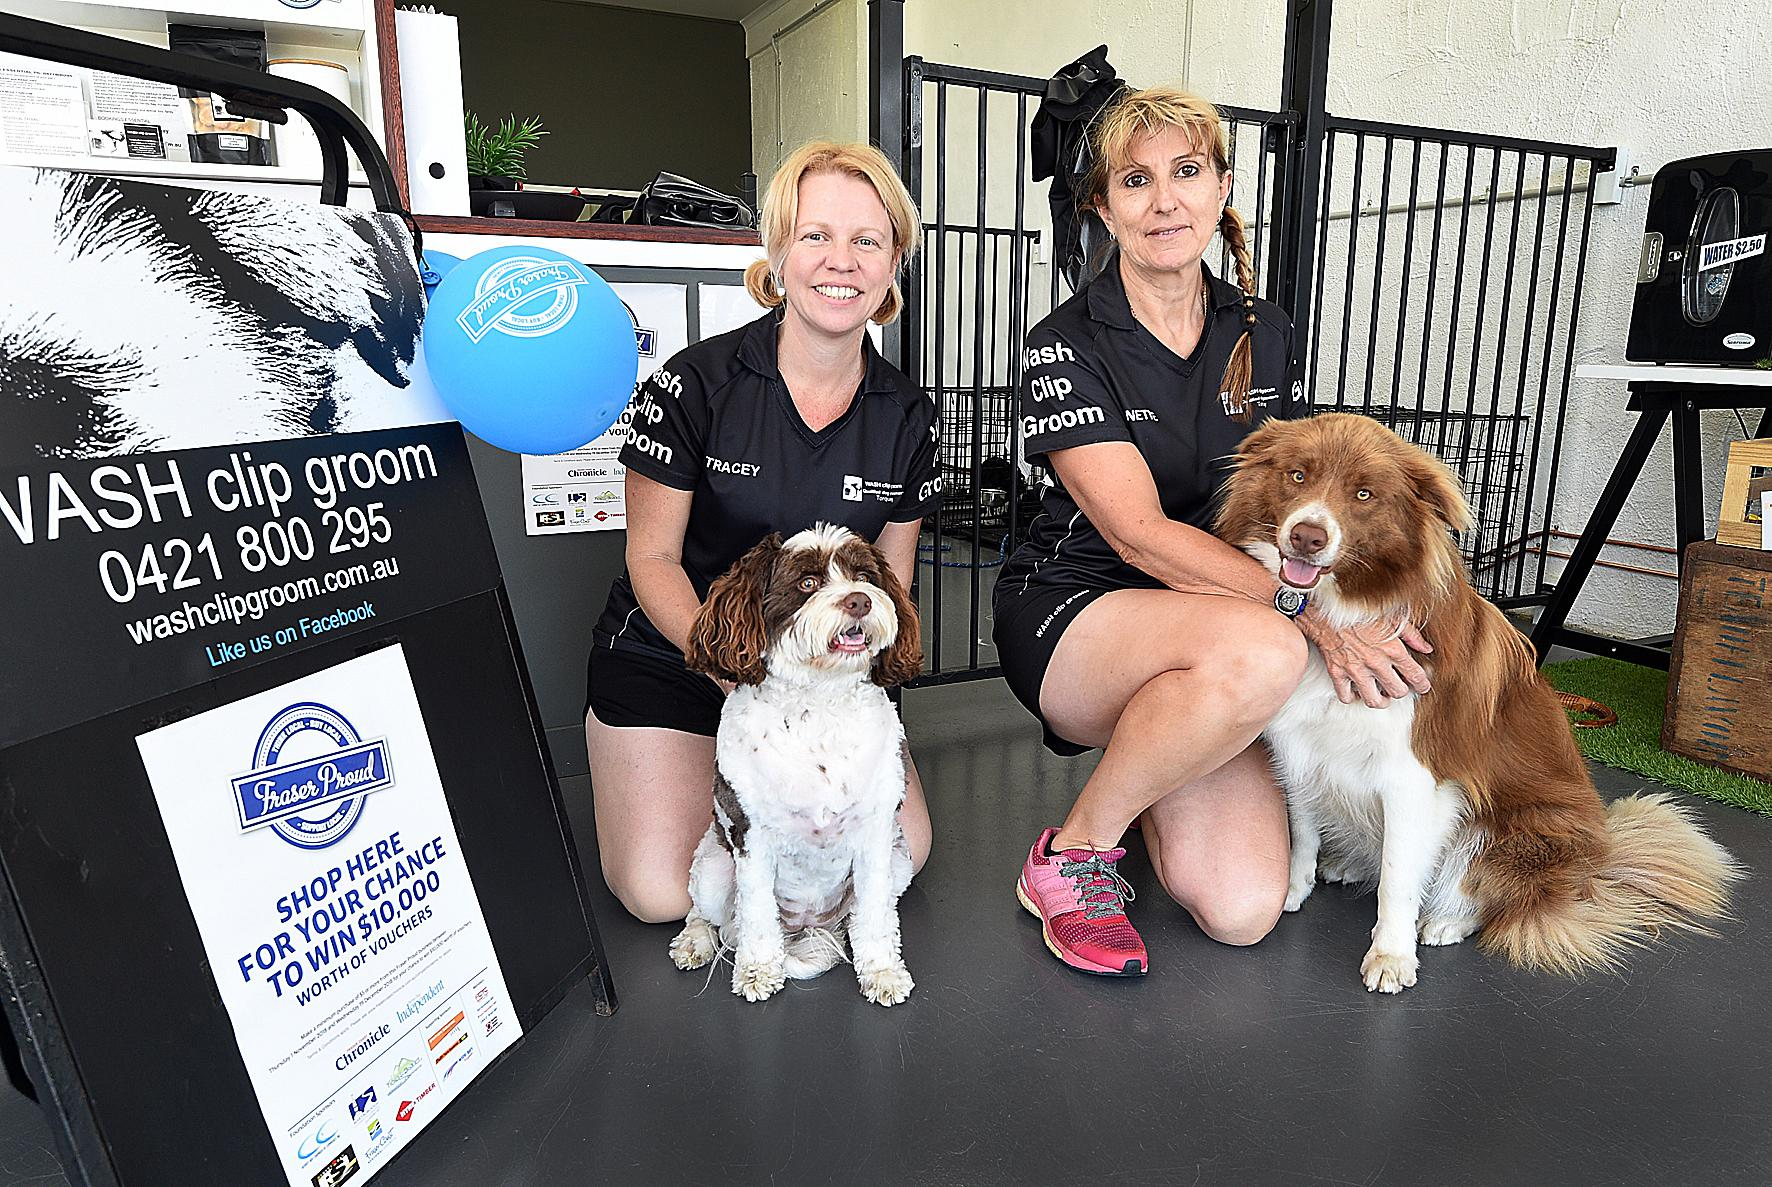 Fraser Proud - (L) Tracey Morgan with Coco and Annette Gniel with Benny about to get pampered at WASH clip groom at Torquay.